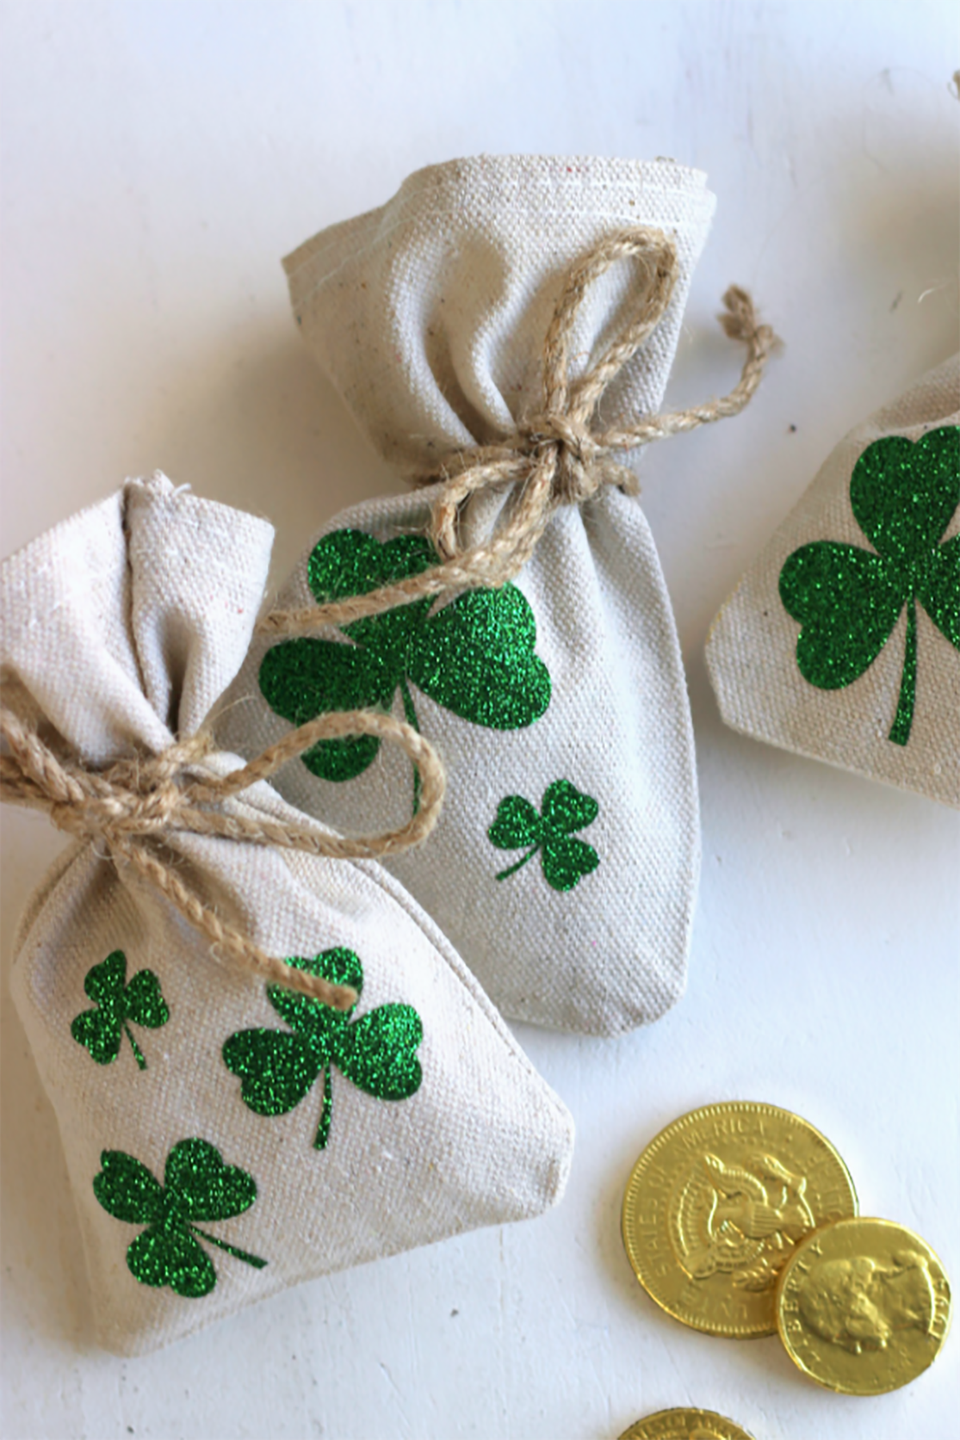 """<p>Surprise your kids or friends with some gold treats. It's their lucky day!</p><p><strong>Get the tutorial at <a href=""""http://www.ribbonsandglue.com/lucky-shamrock-coin-bags-diy.html#.WIeiy7YrJgc"""" rel=""""nofollow noopener"""" target=""""_blank"""" data-ylk=""""slk:Ribbons and Glue"""" class=""""link rapid-noclick-resp"""">Ribbons and Glue</a>. </strong></p>"""